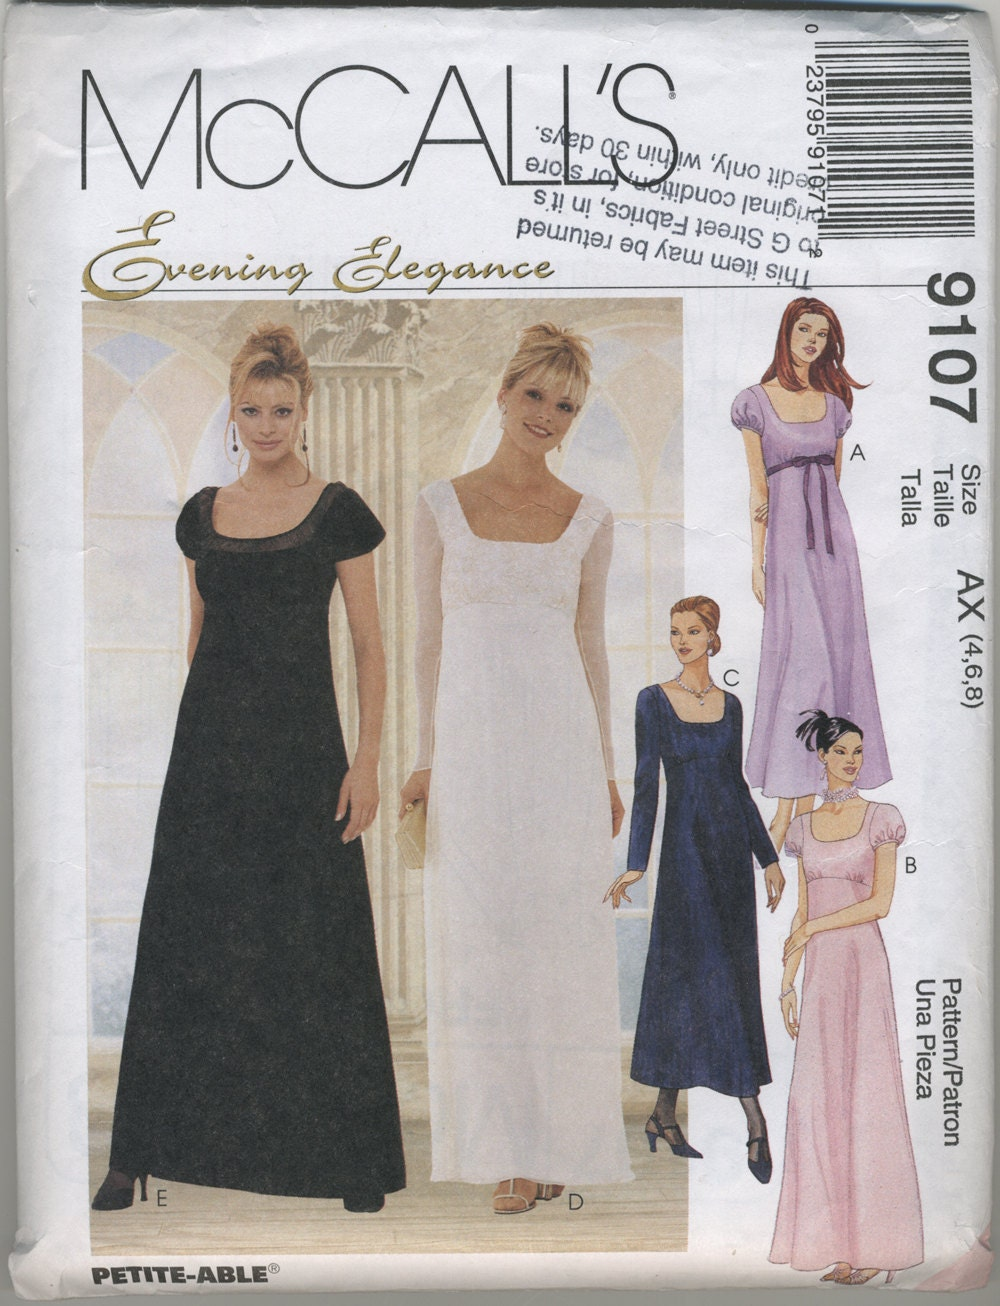 Wedding Dress Patterns Empire Line : Mccalls empire waist gown dress sewing pattern size